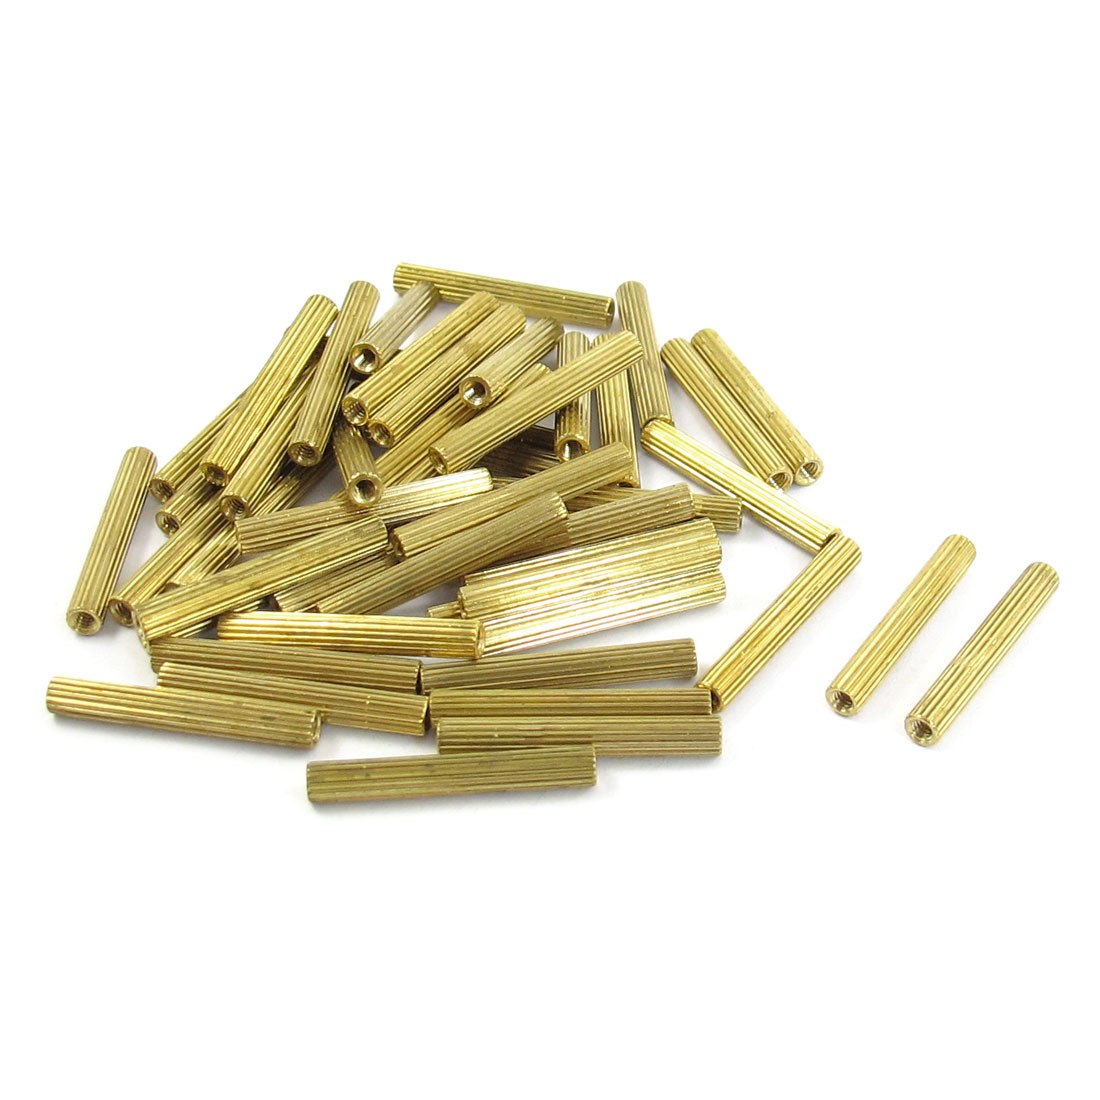 50 Pcs M2 Female Thread Cylindrical Brass Stand-off Support M2x22mm